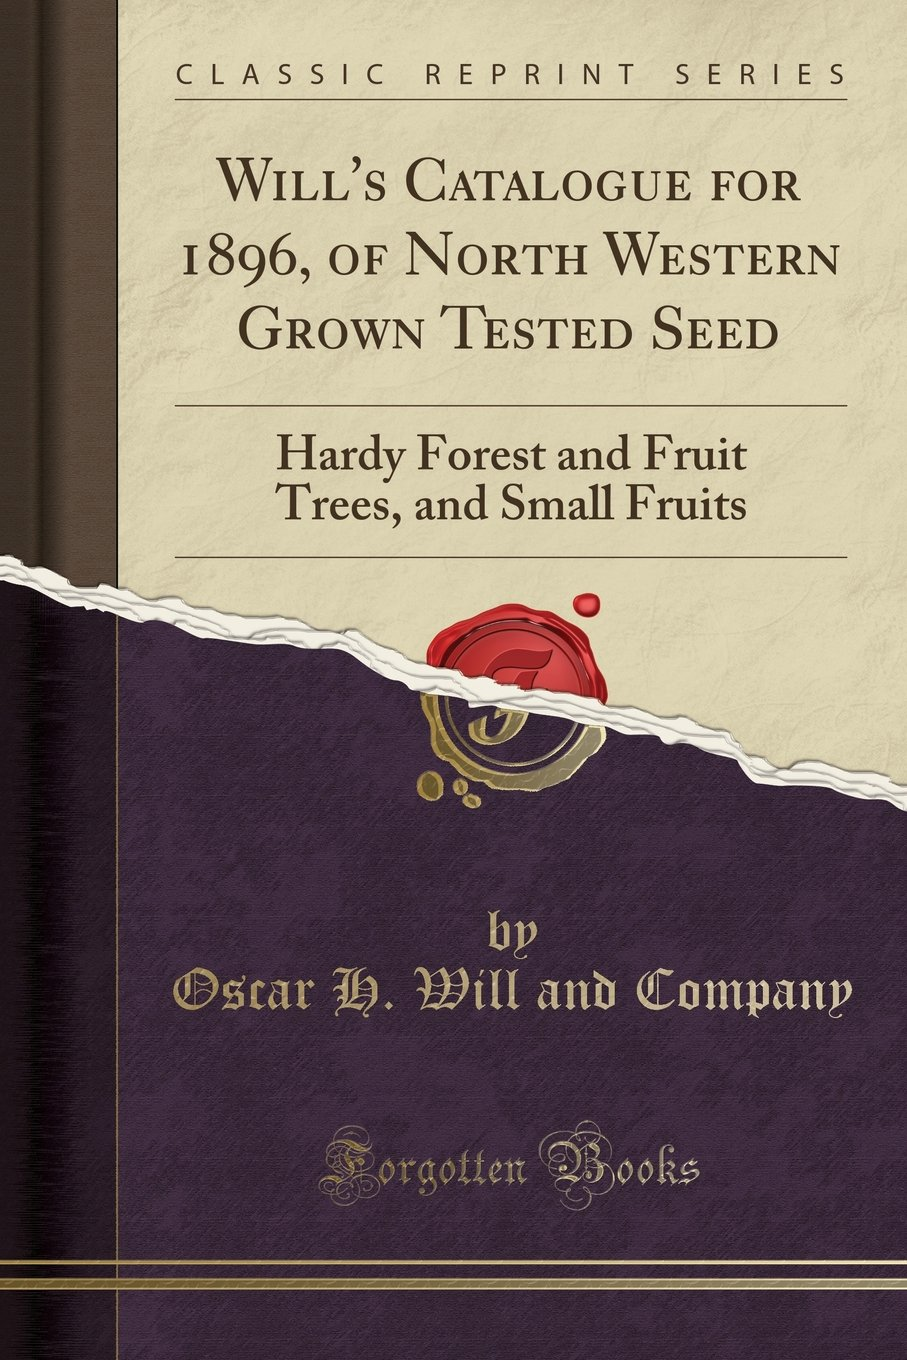 Download Will's Catalogue for 1896, of North Western Grown Tested Seed: Hardy Forest and Fruit Trees, and Small Fruits (Classic Reprint) pdf epub